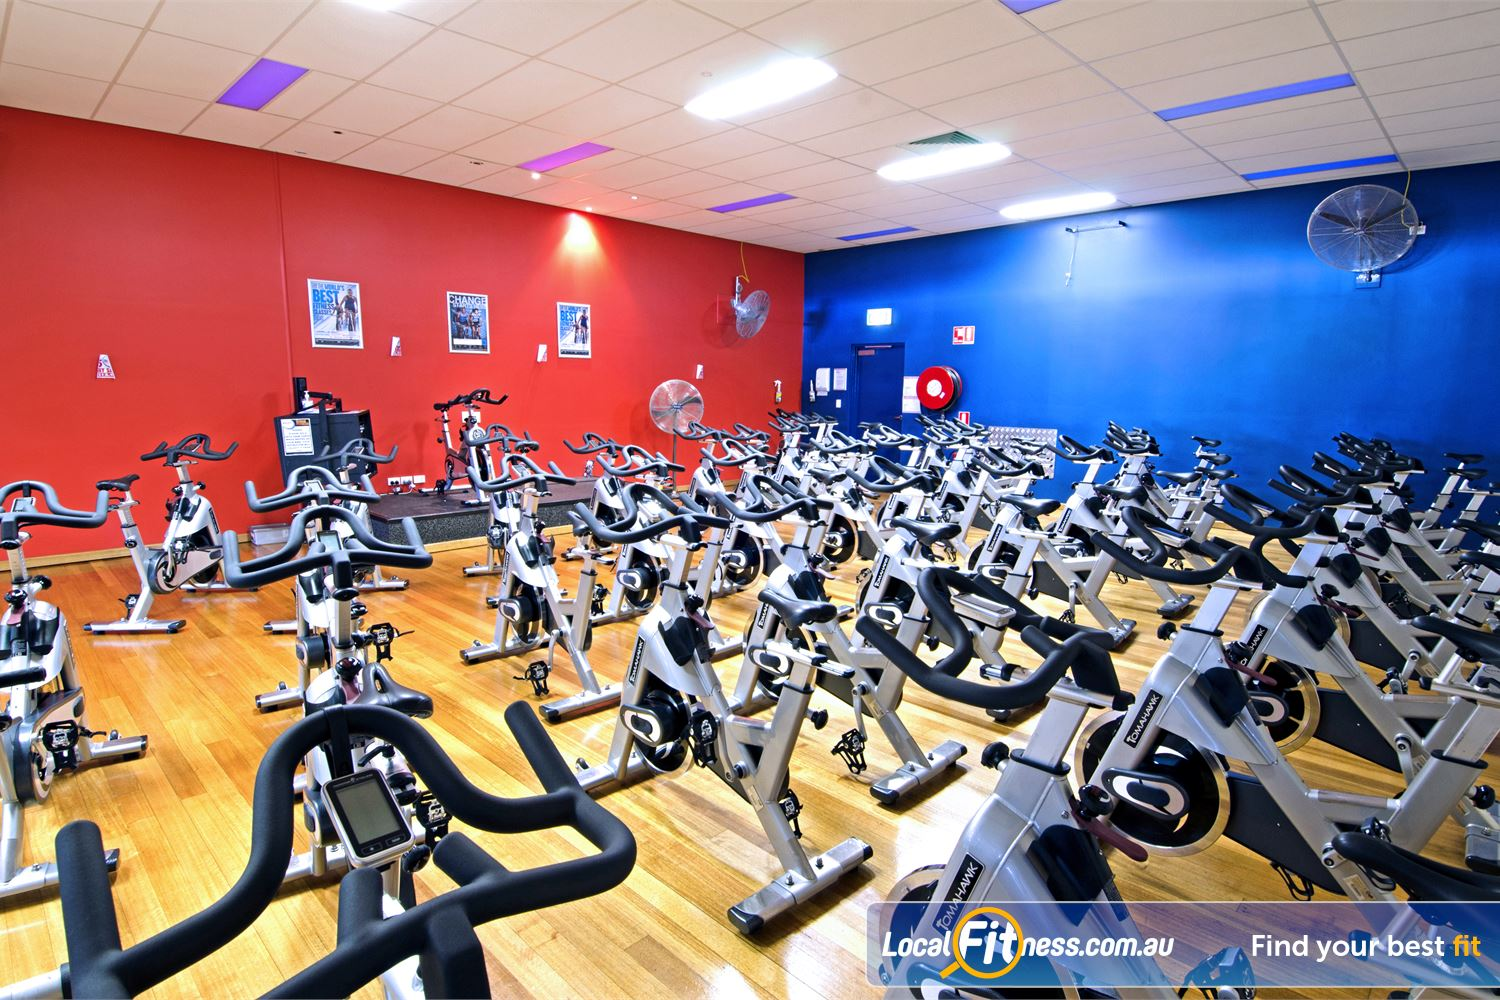 Goodlife Health Clubs Near Thornlands Dedicated Cleveland spin cycle studio.